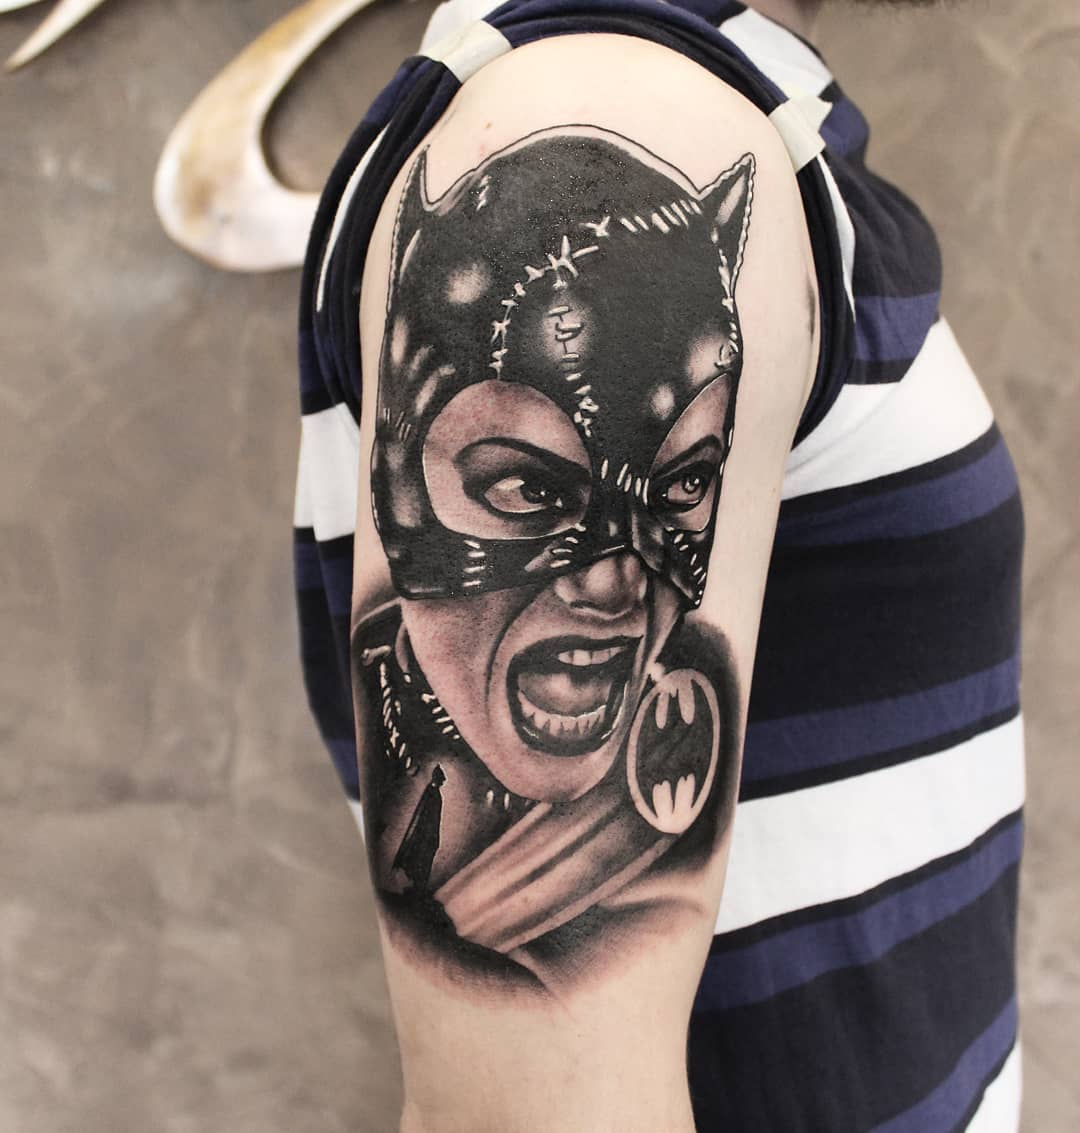 Next step on this batman-sleeve. #germantattooers #tattooworkers #tattoolife #ge